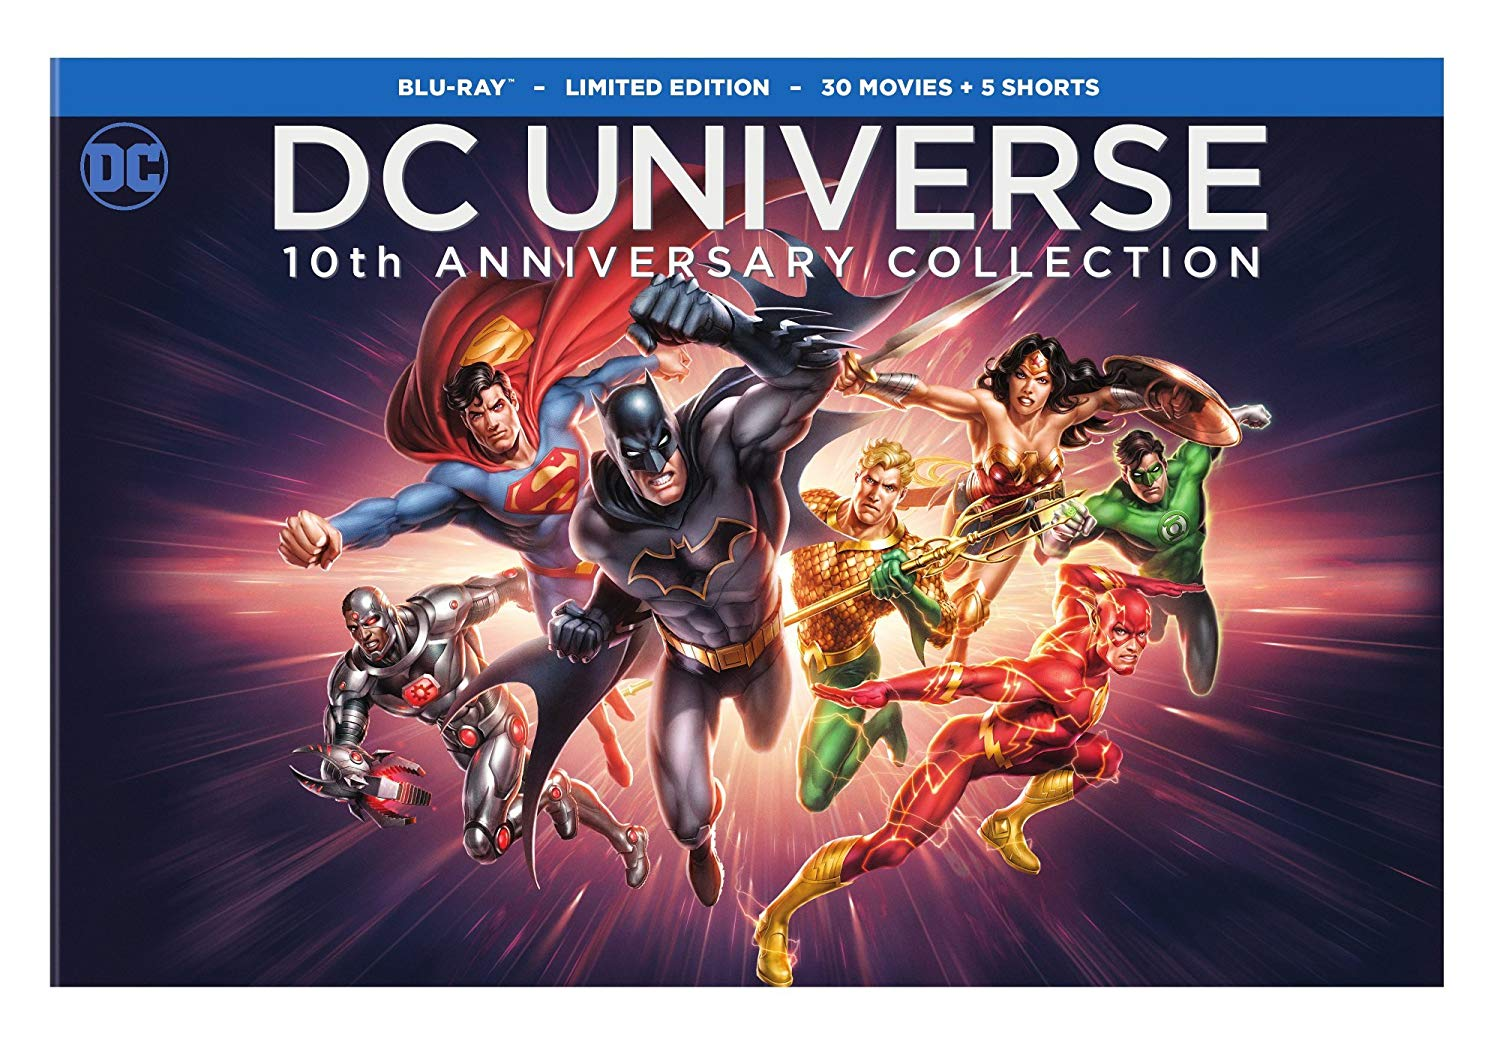 Enter to Win a DC Universe 10th Anniversary Blu-Ray Collection